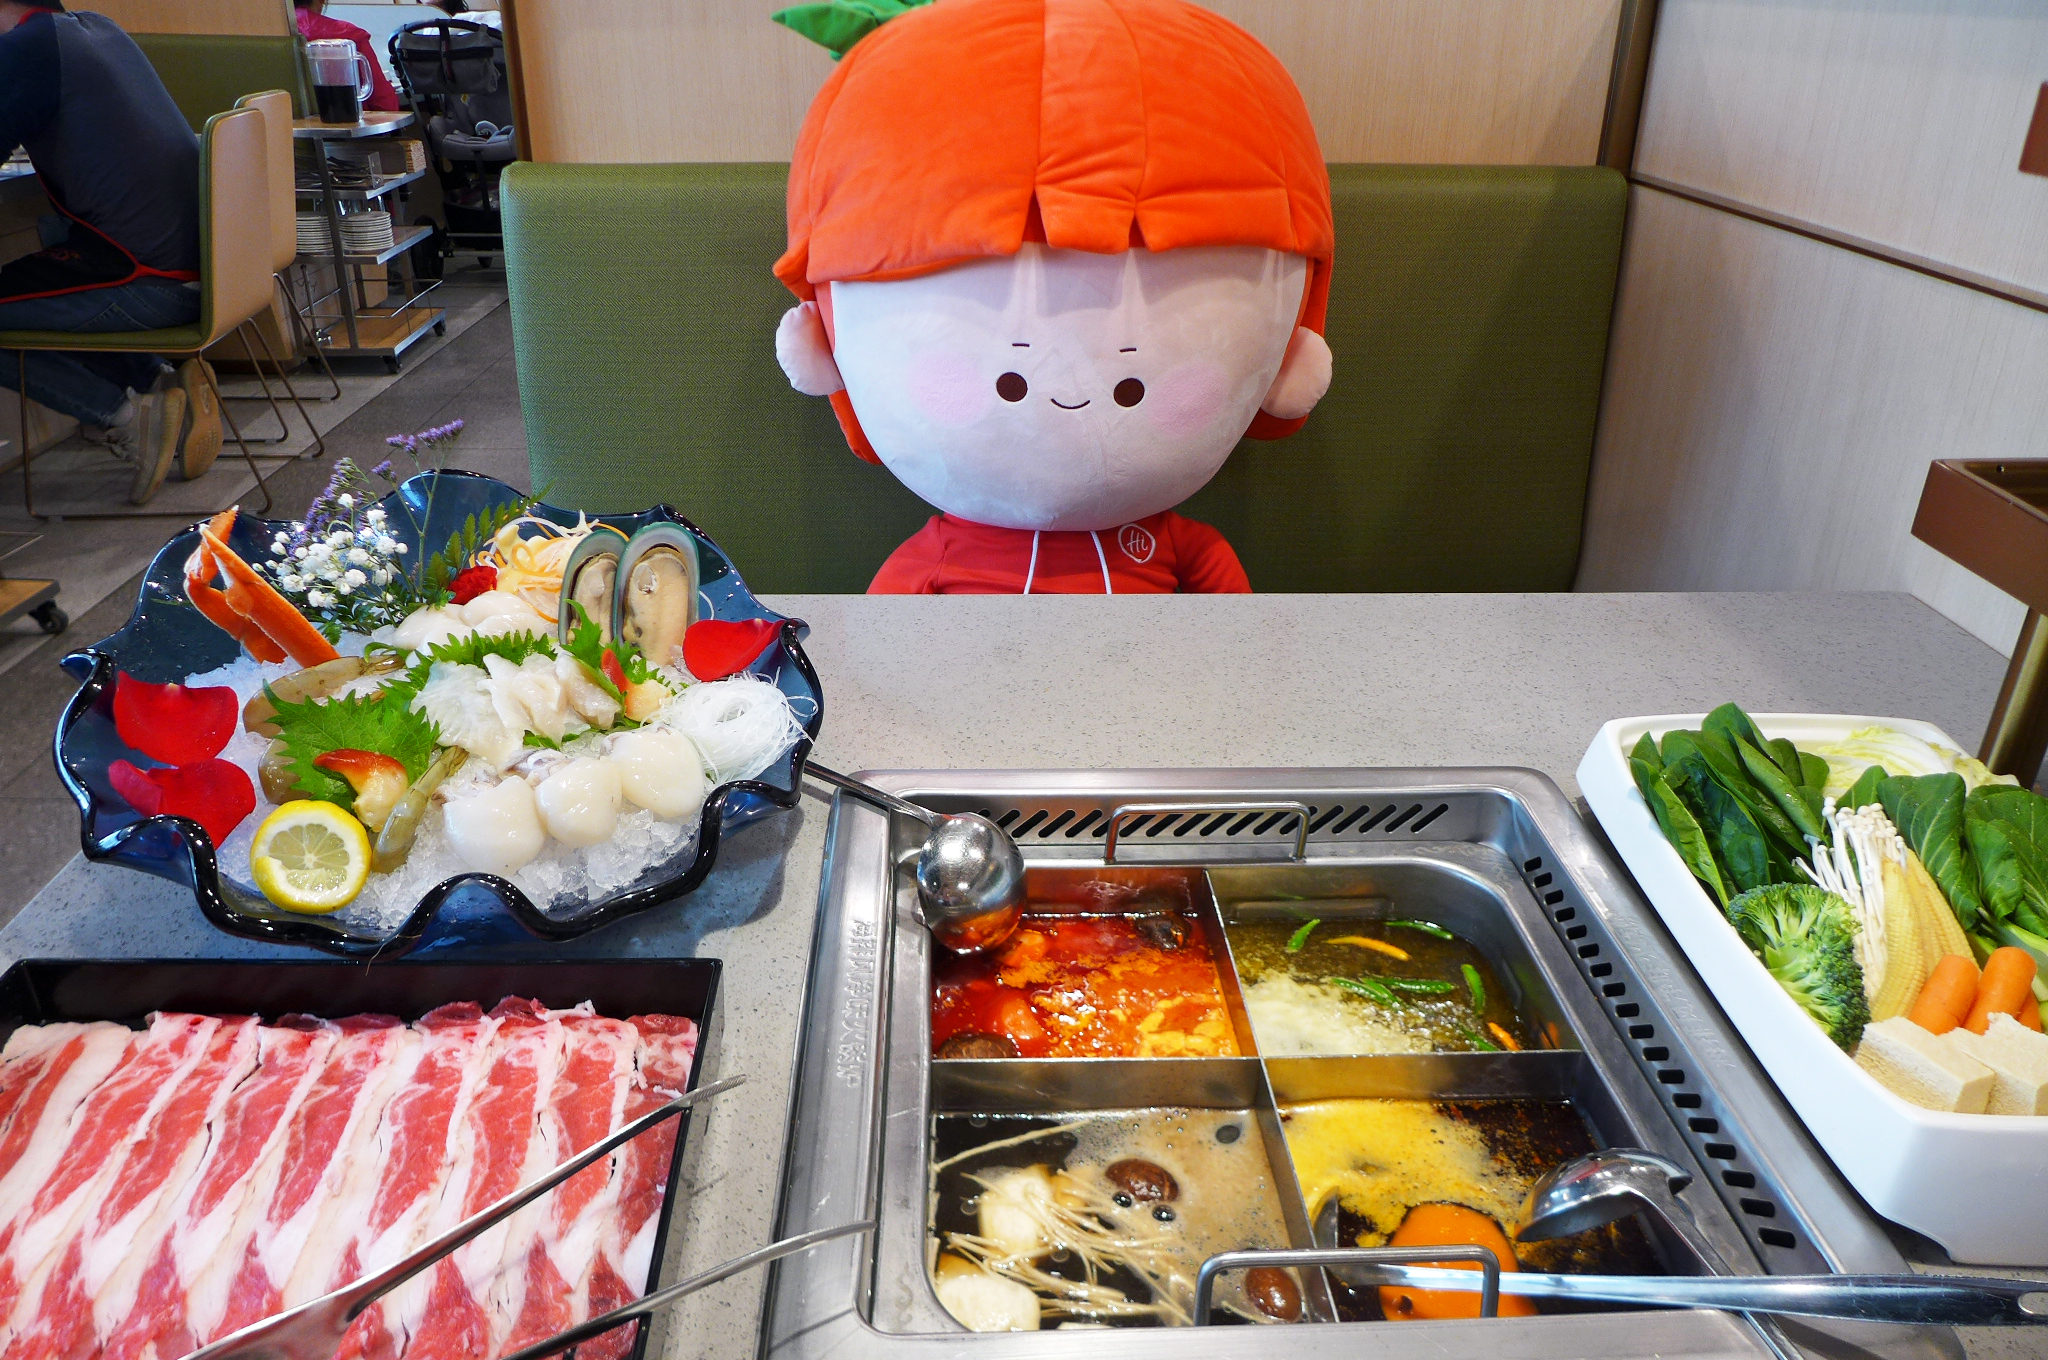 A stuffed tomato character with a red hat sits opposite me at a booth, with a hot pot meal spread before us